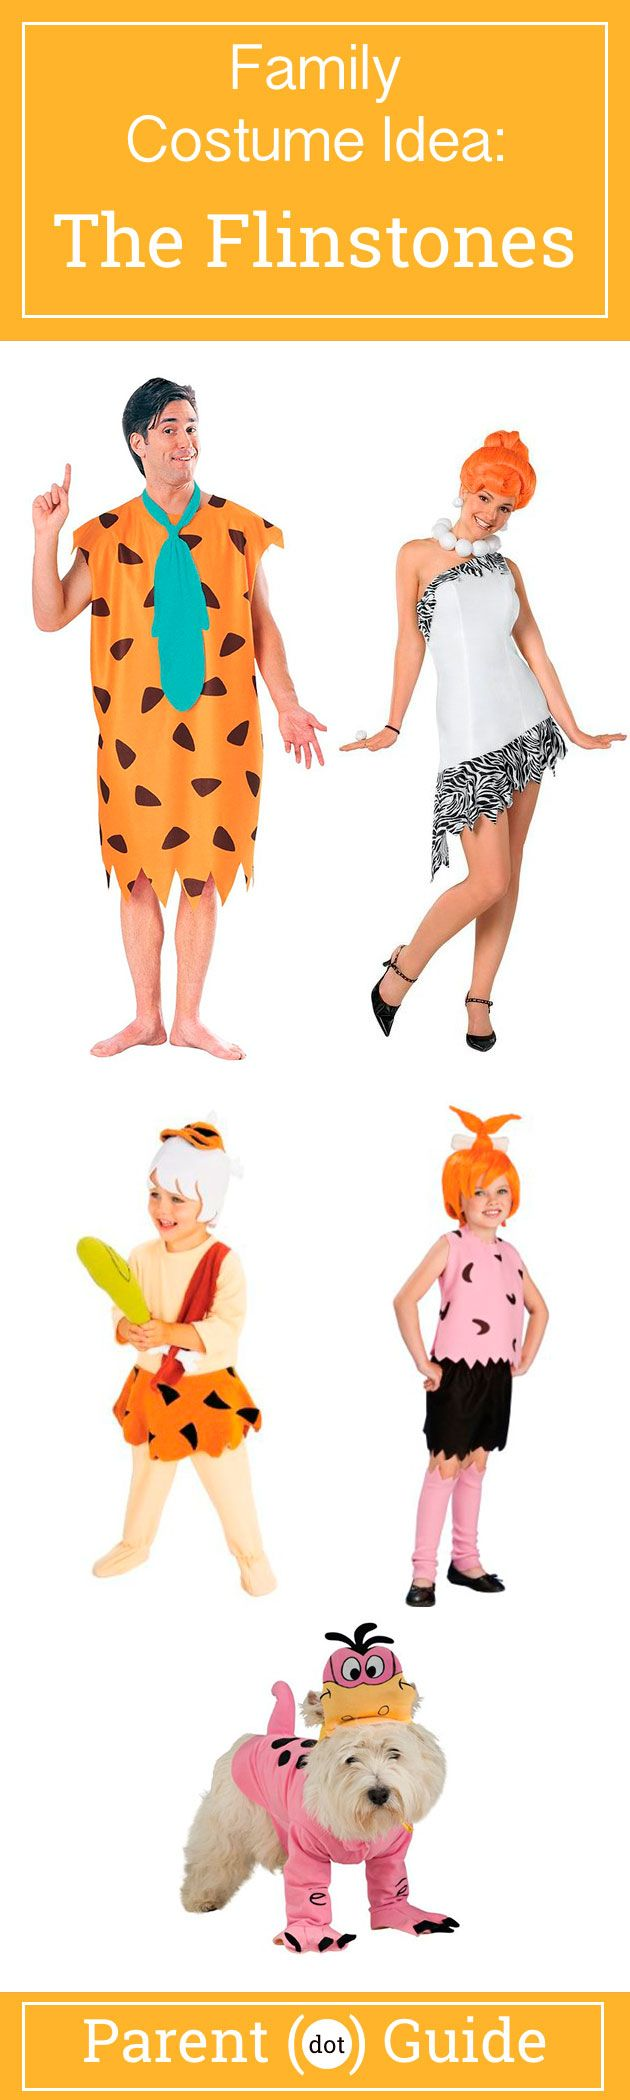 Dress your family up as this prehistoric dysfunctional family. The Flintstones costume features Fred, Wilma, Bam Bam, Pebbles and even a Dino costume for your dog. So get in your foot powered car and hit the town as a family. #pebblesandbambamcostumes